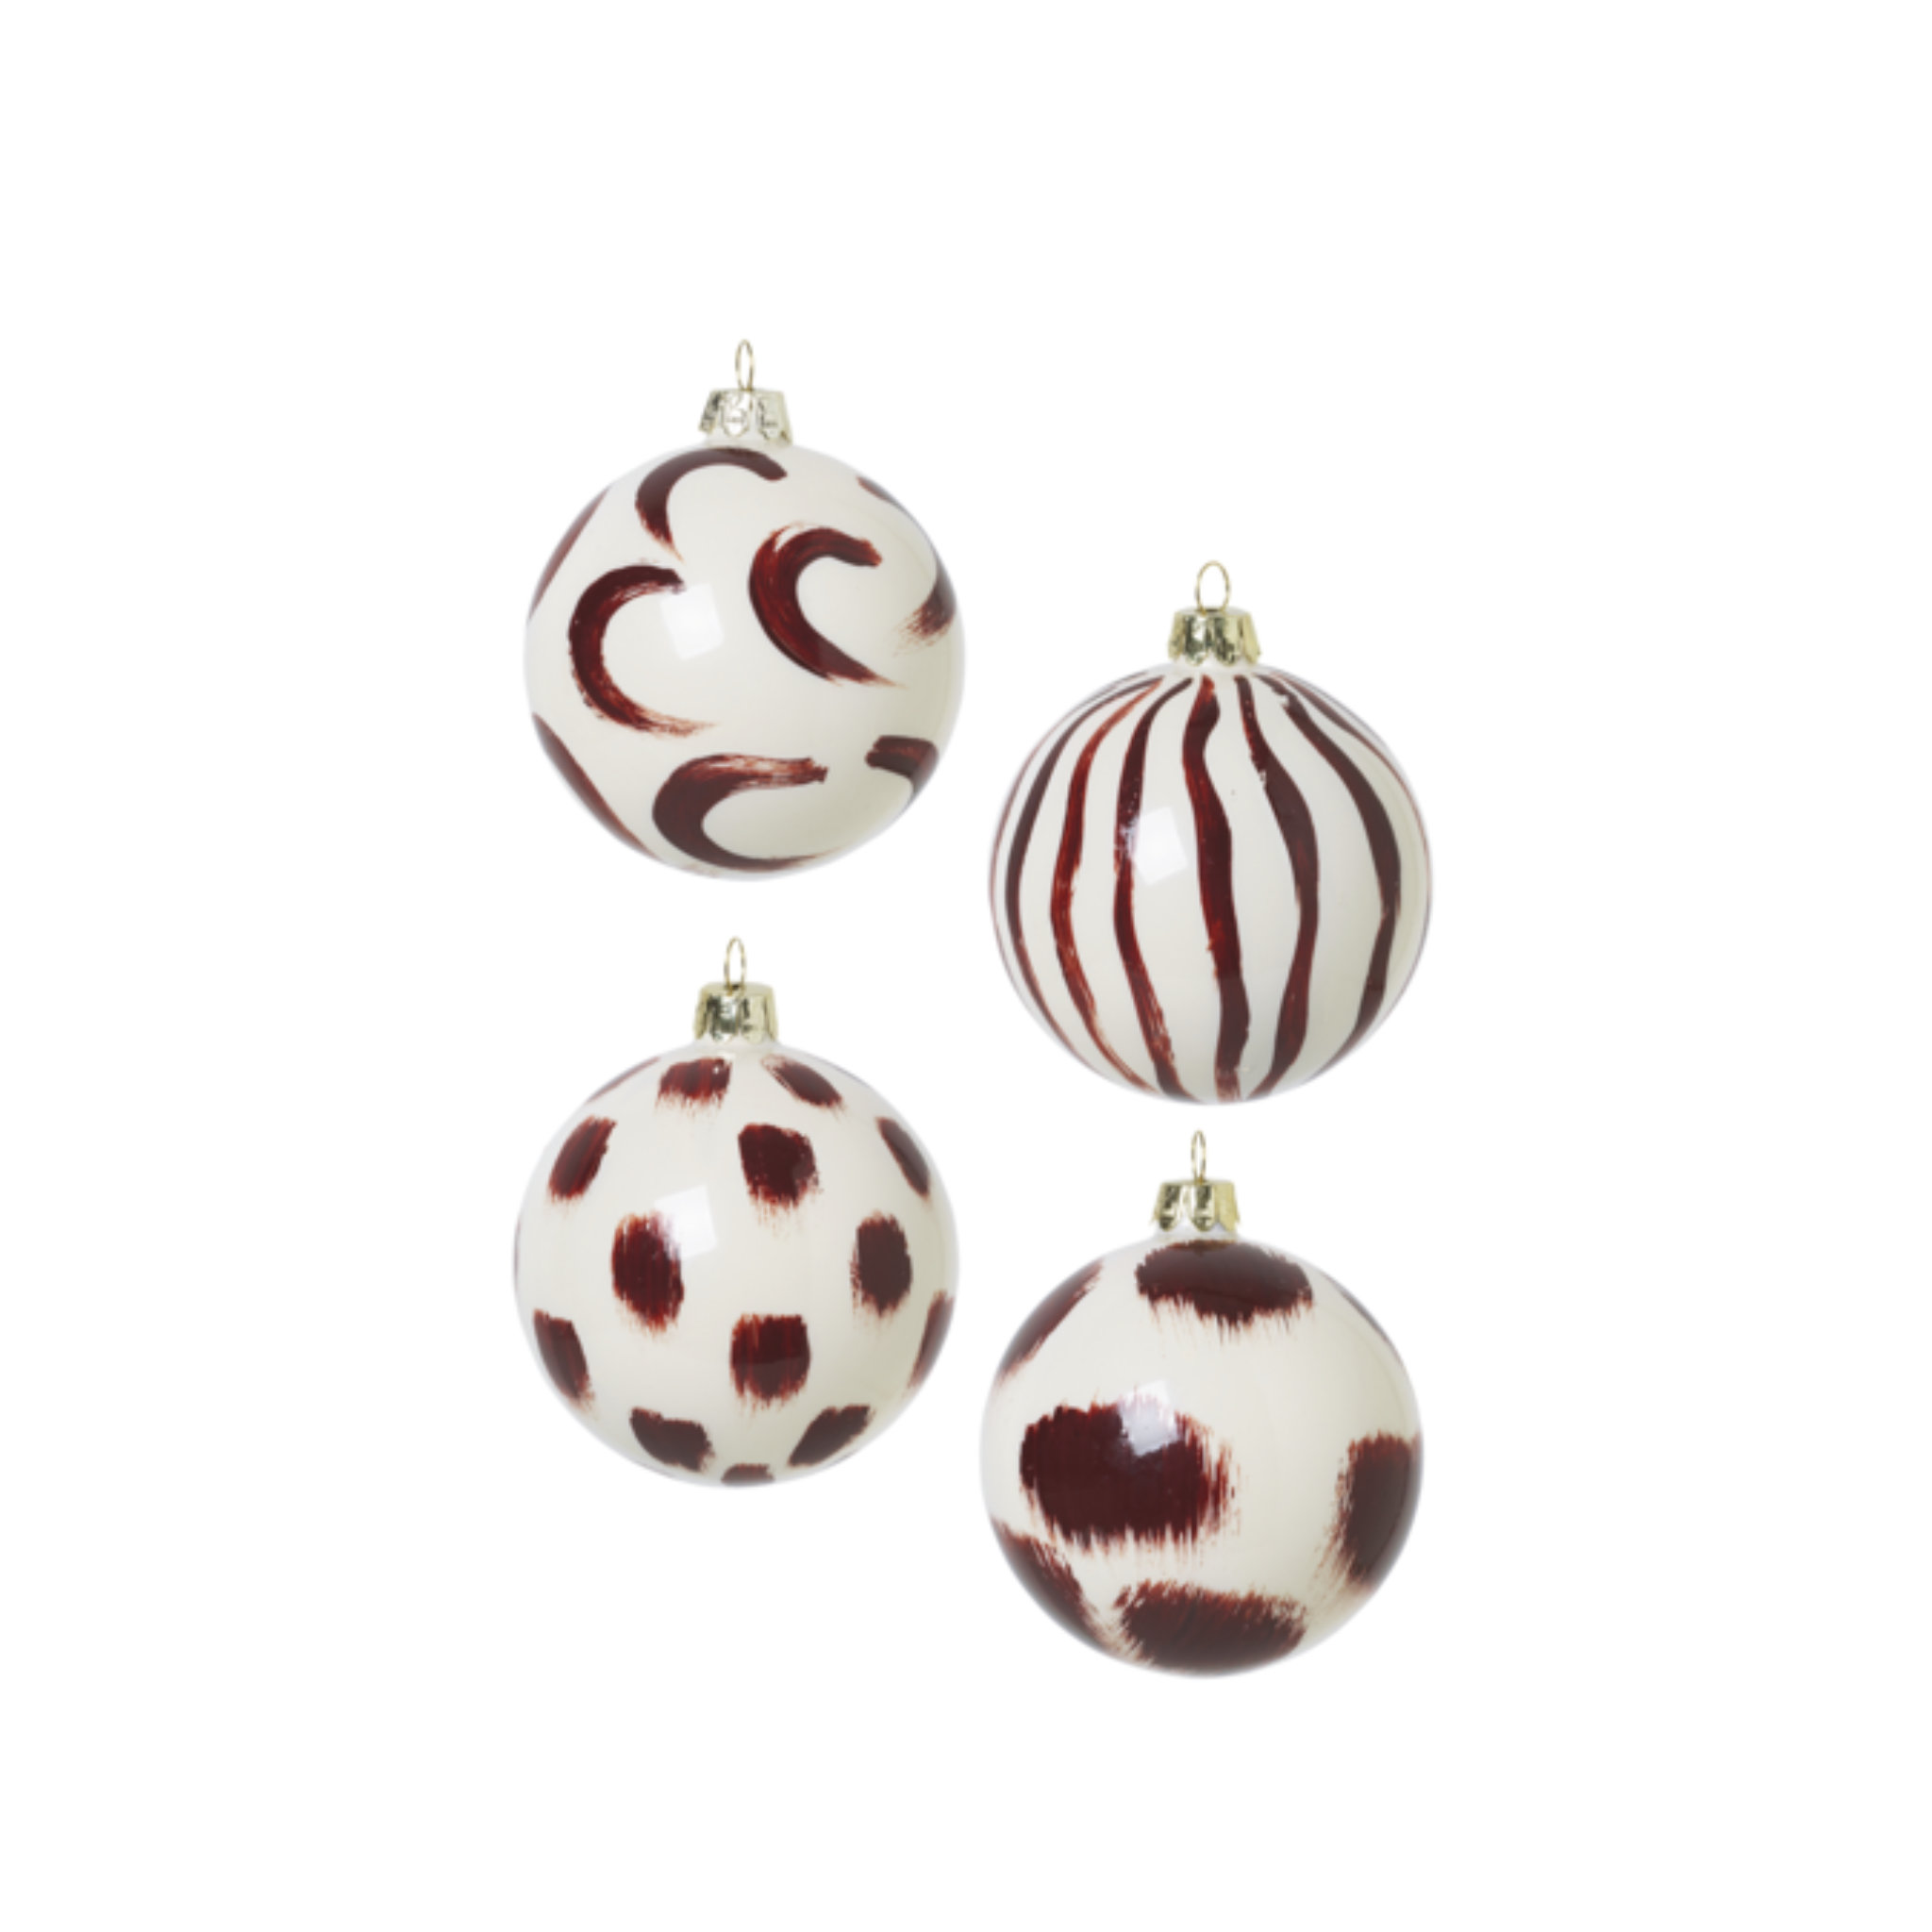 Ferm Living Christmas Hand Painted Glass Ornaments- Red Brown